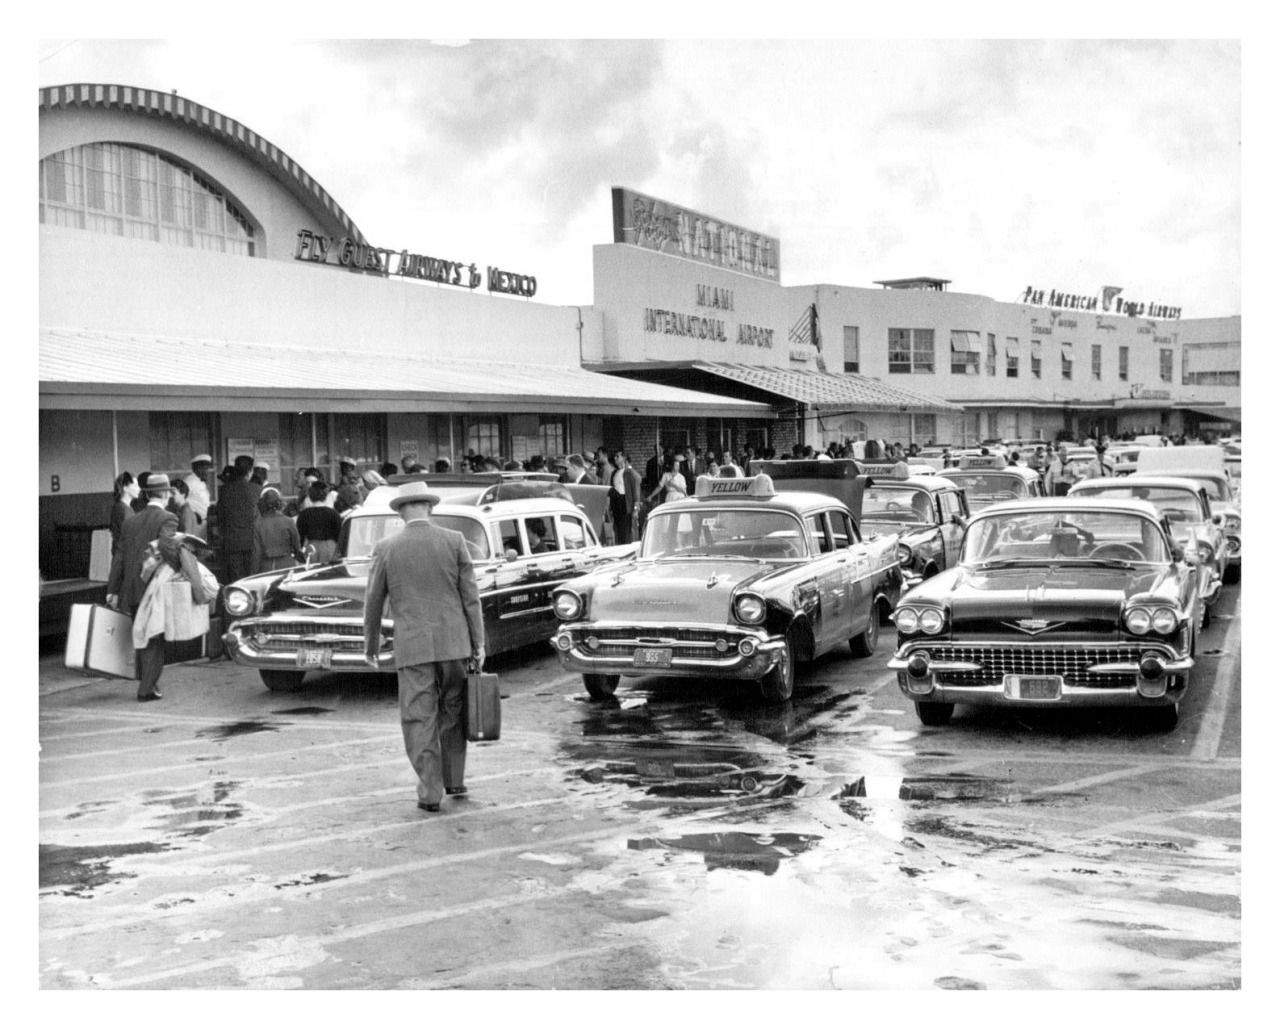 Vintage shots from days gone by! Miami international